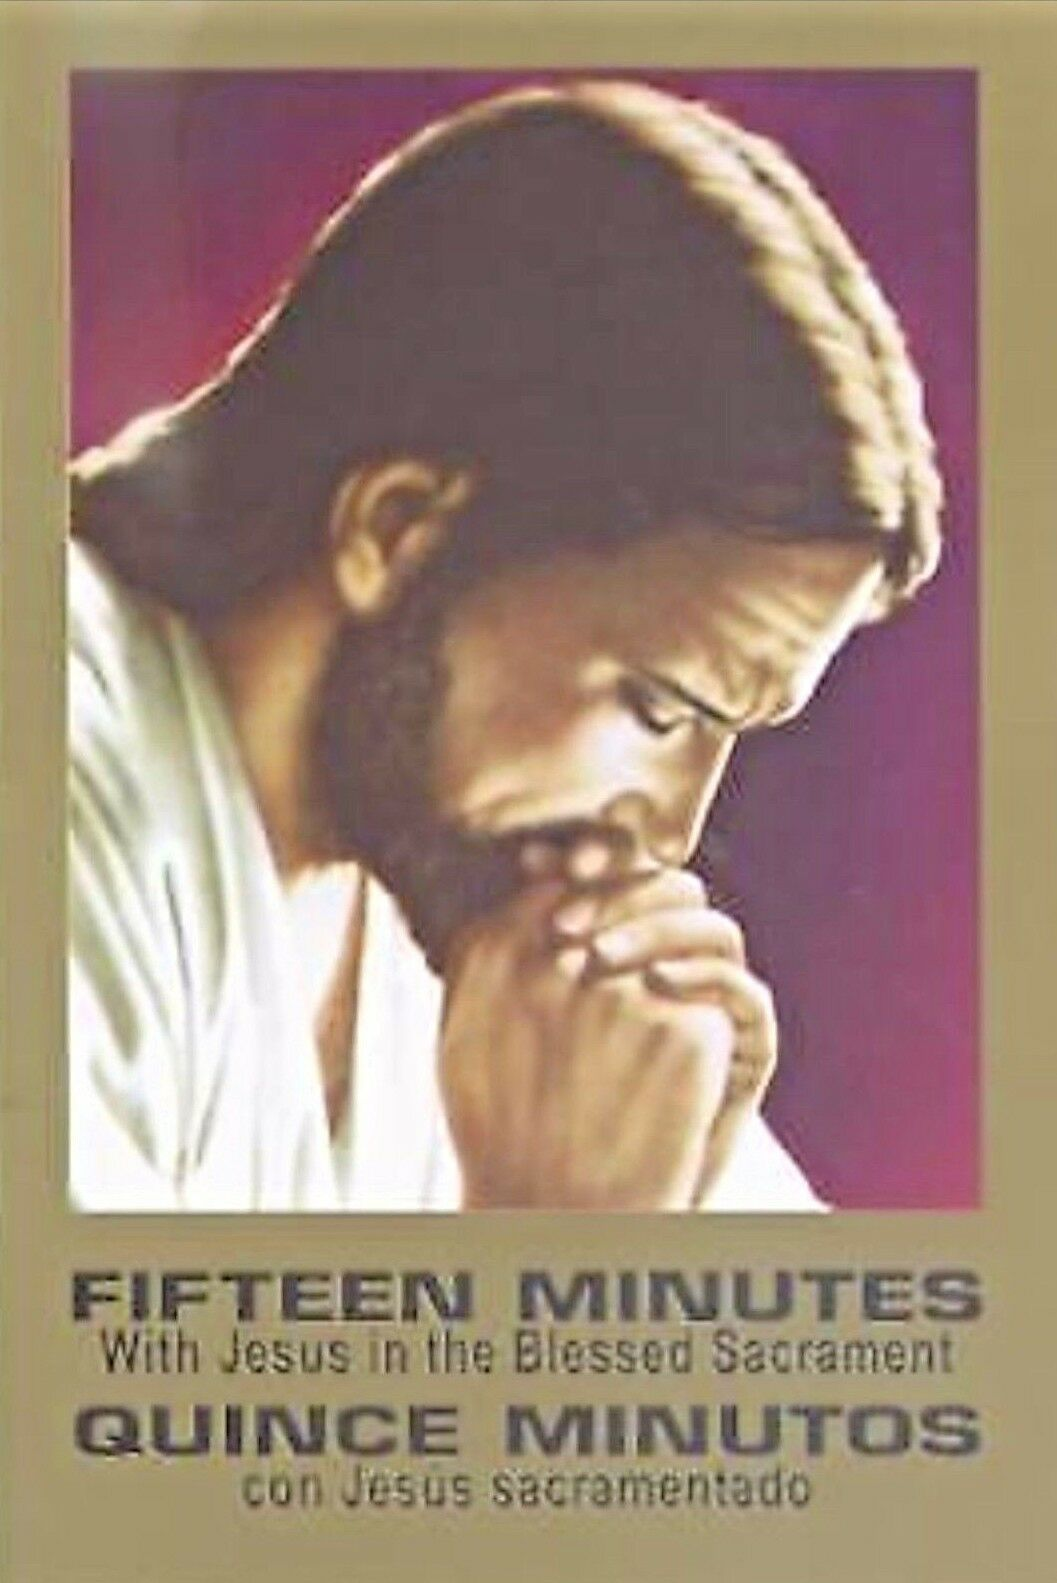 Quince Minutos con Jesus Sacramentado - Fifteen Minutes w Jesus in the Blessed..